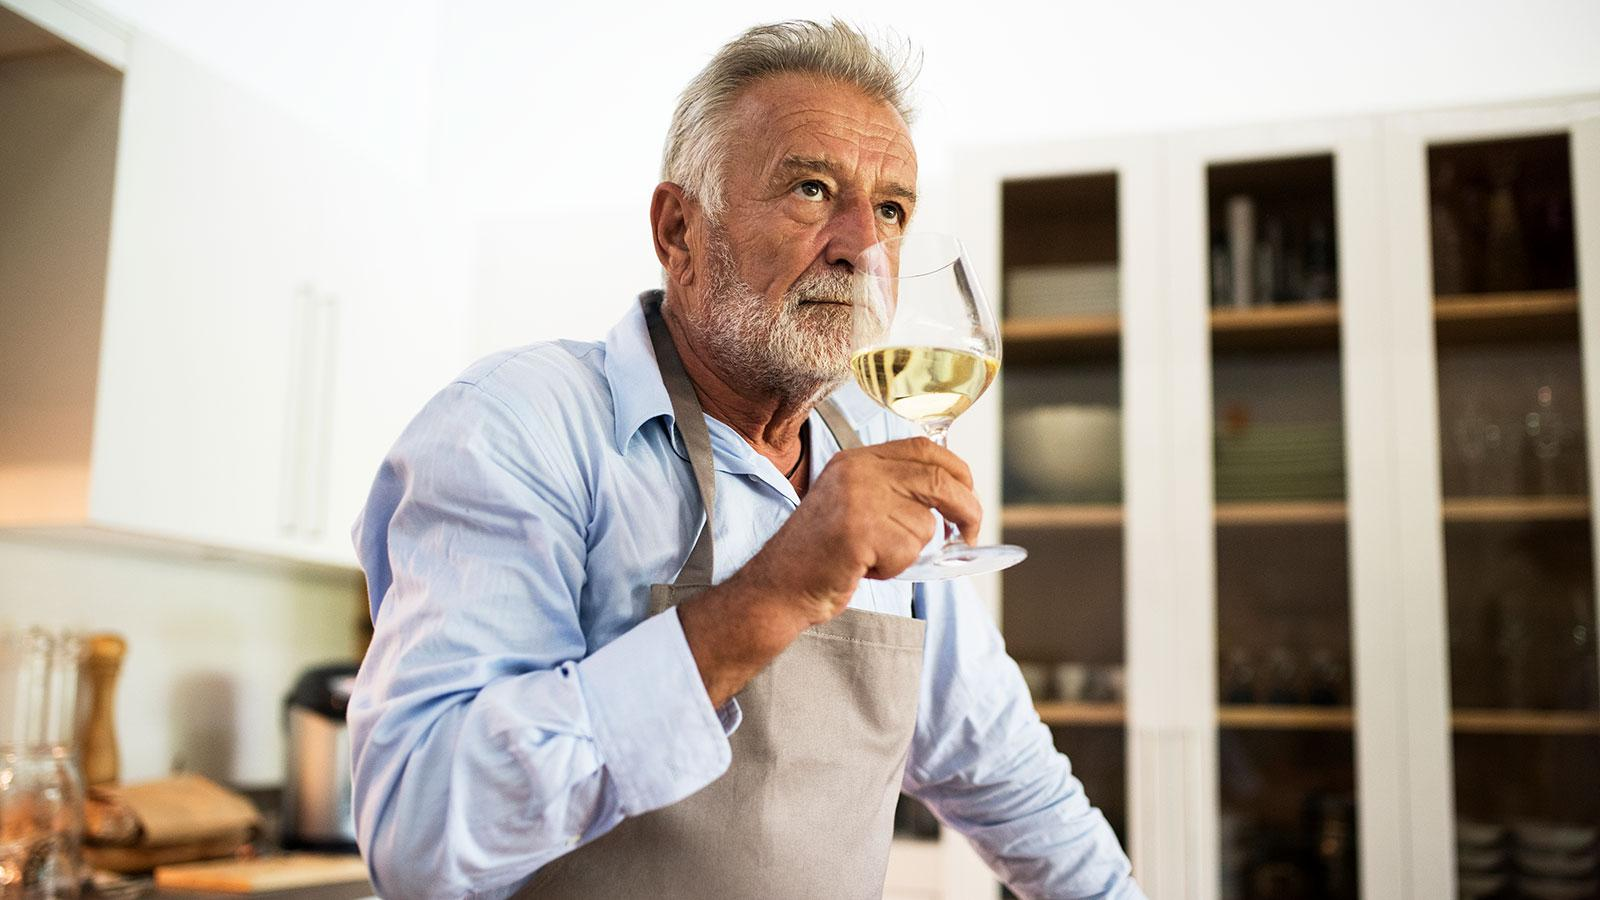 Moderate Wine Consumption Linked to Lower Risk of Lung Disease